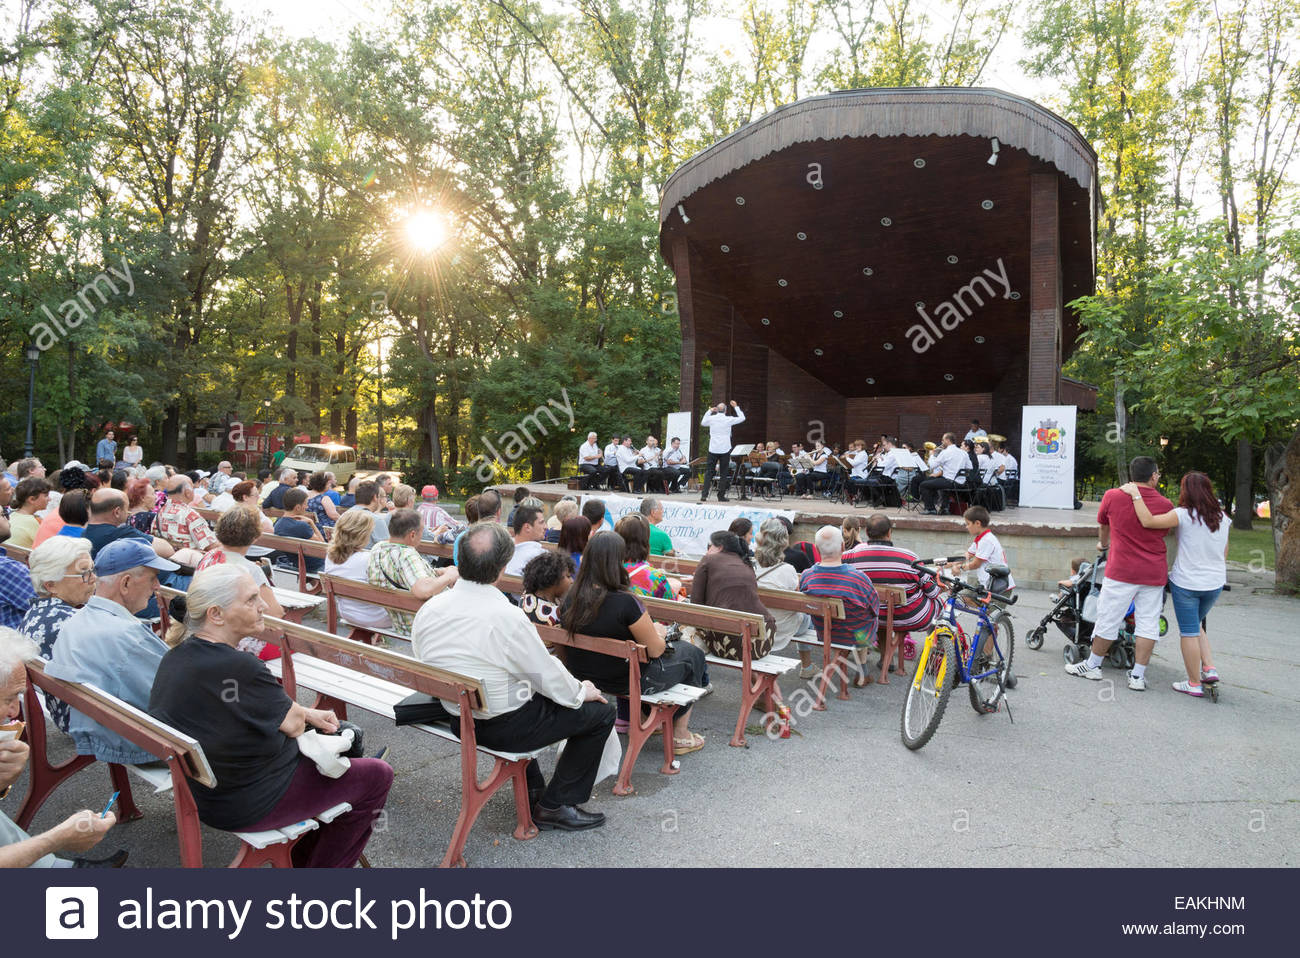 Free classical music open air concert in Park Borisova gradina, Sofia, Bulgaria - Stock Image